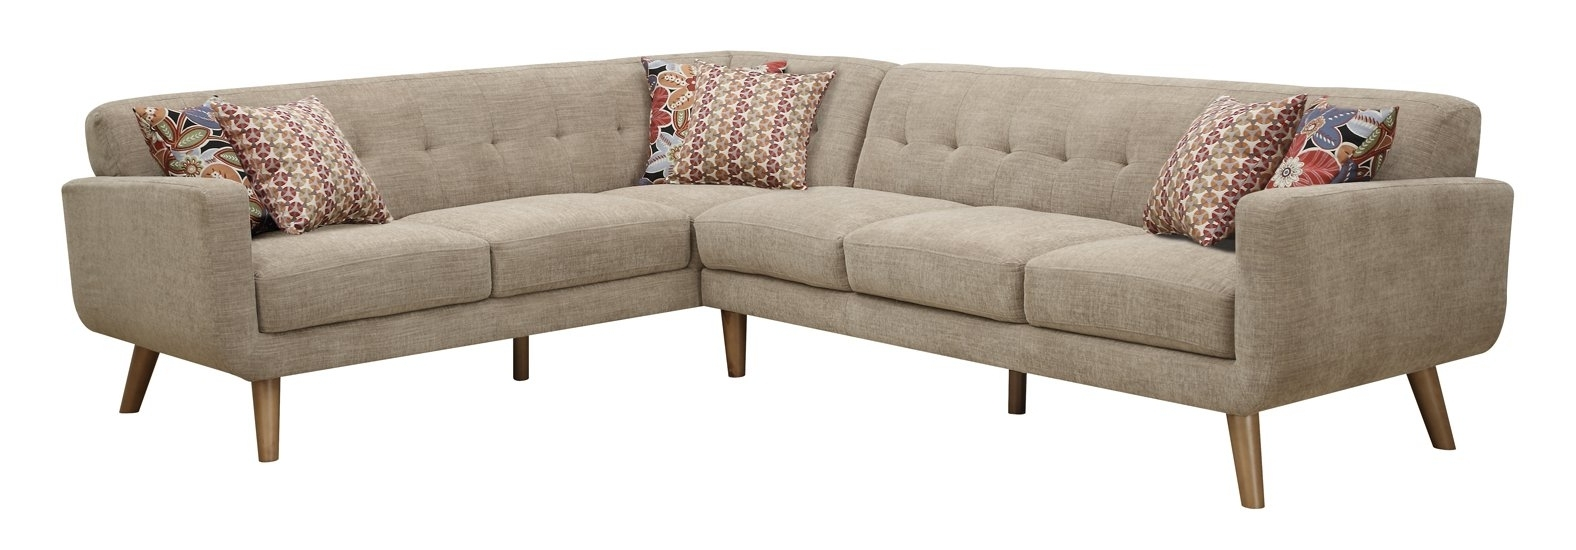 Joss & Main In Preferred Virginia Beach Sectional Sofas (View 8 of 20)